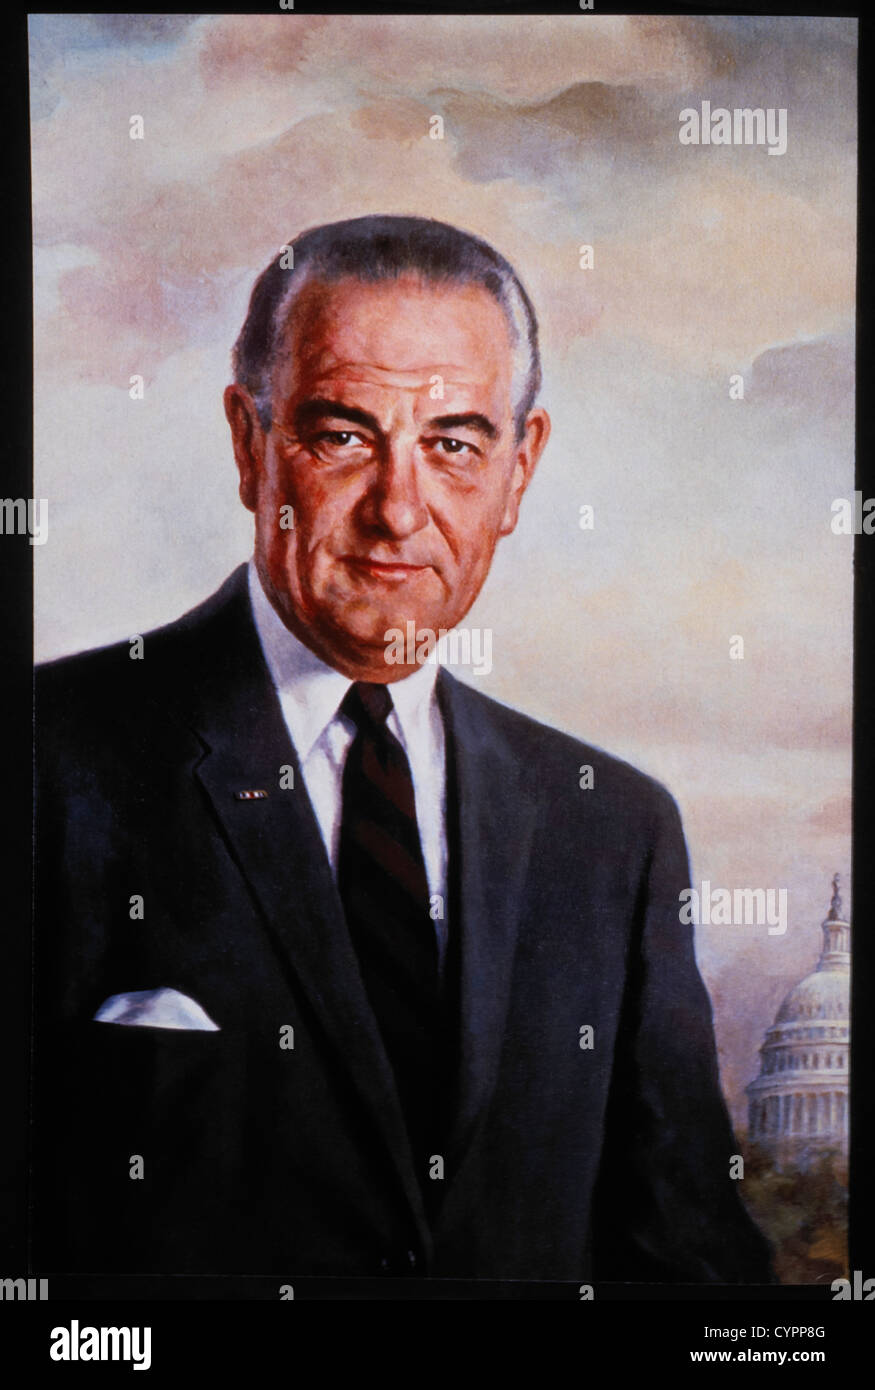 Lyndon B. Johnson (1908-1973), 36th President of the United States, Official Presidential Portrait Stock Photo